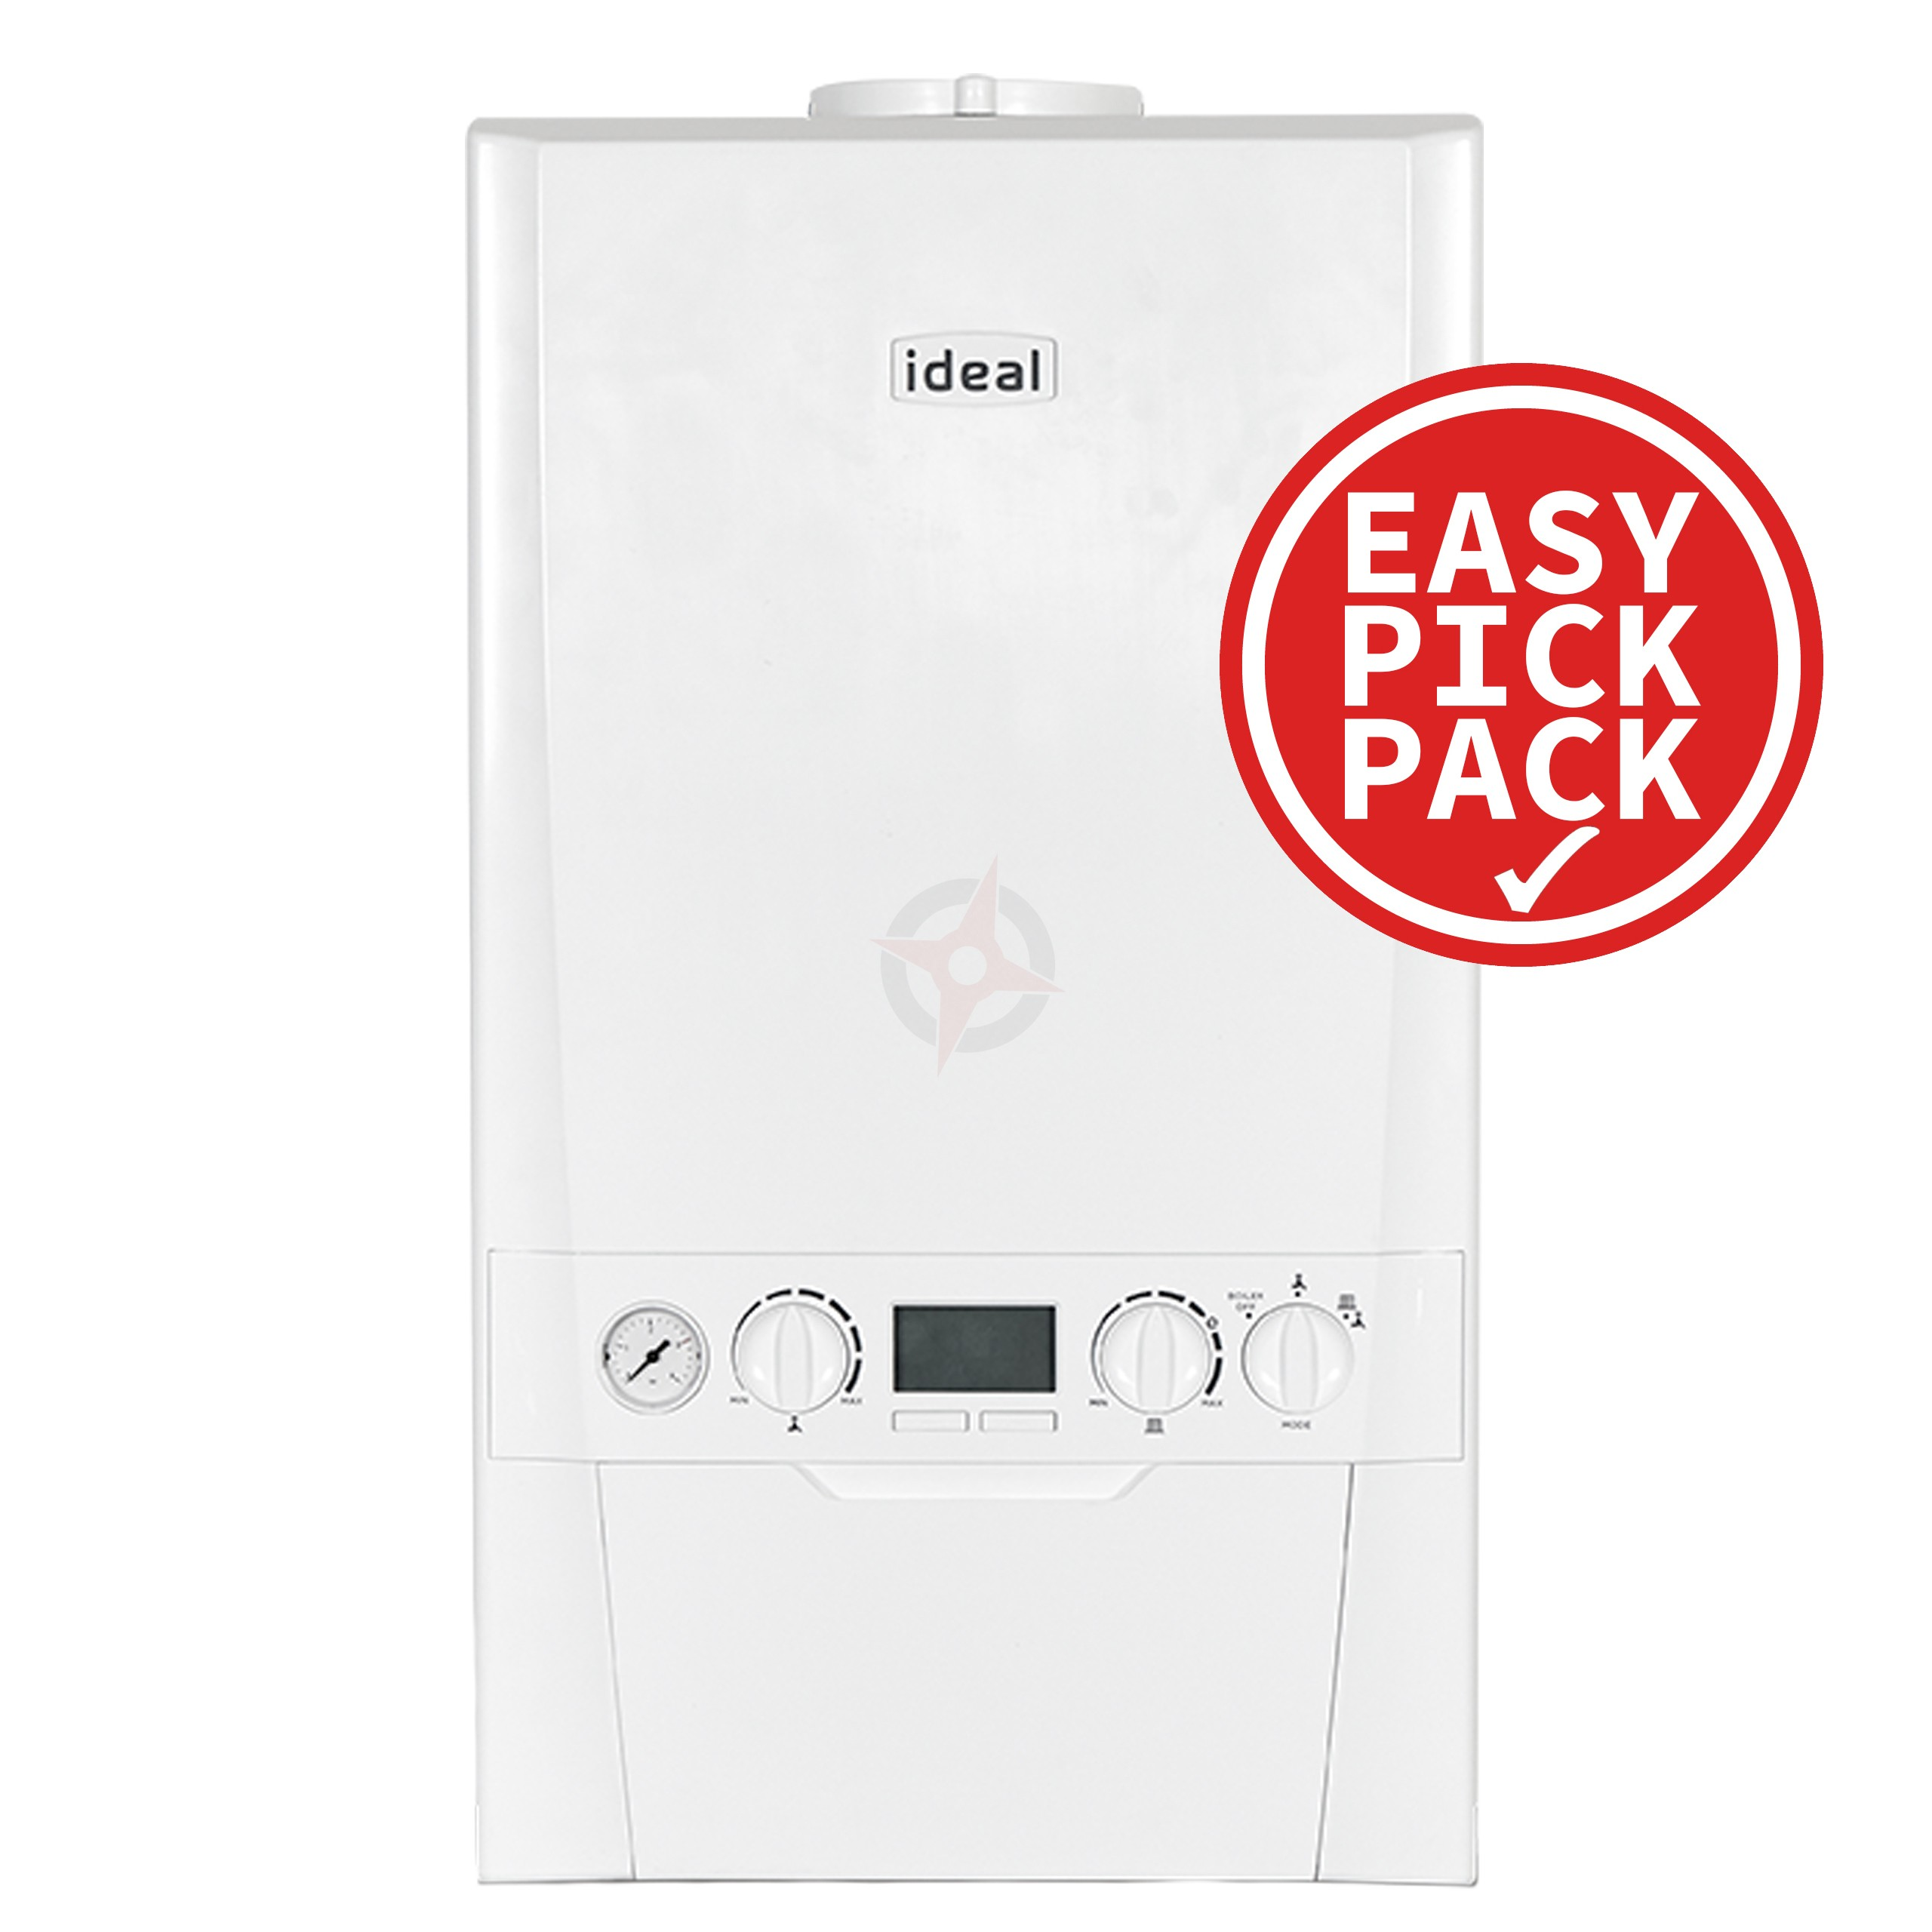 Ideal Logic+ (Plus model) 35 (ErP) Combi Boiler Easy Pick Pack